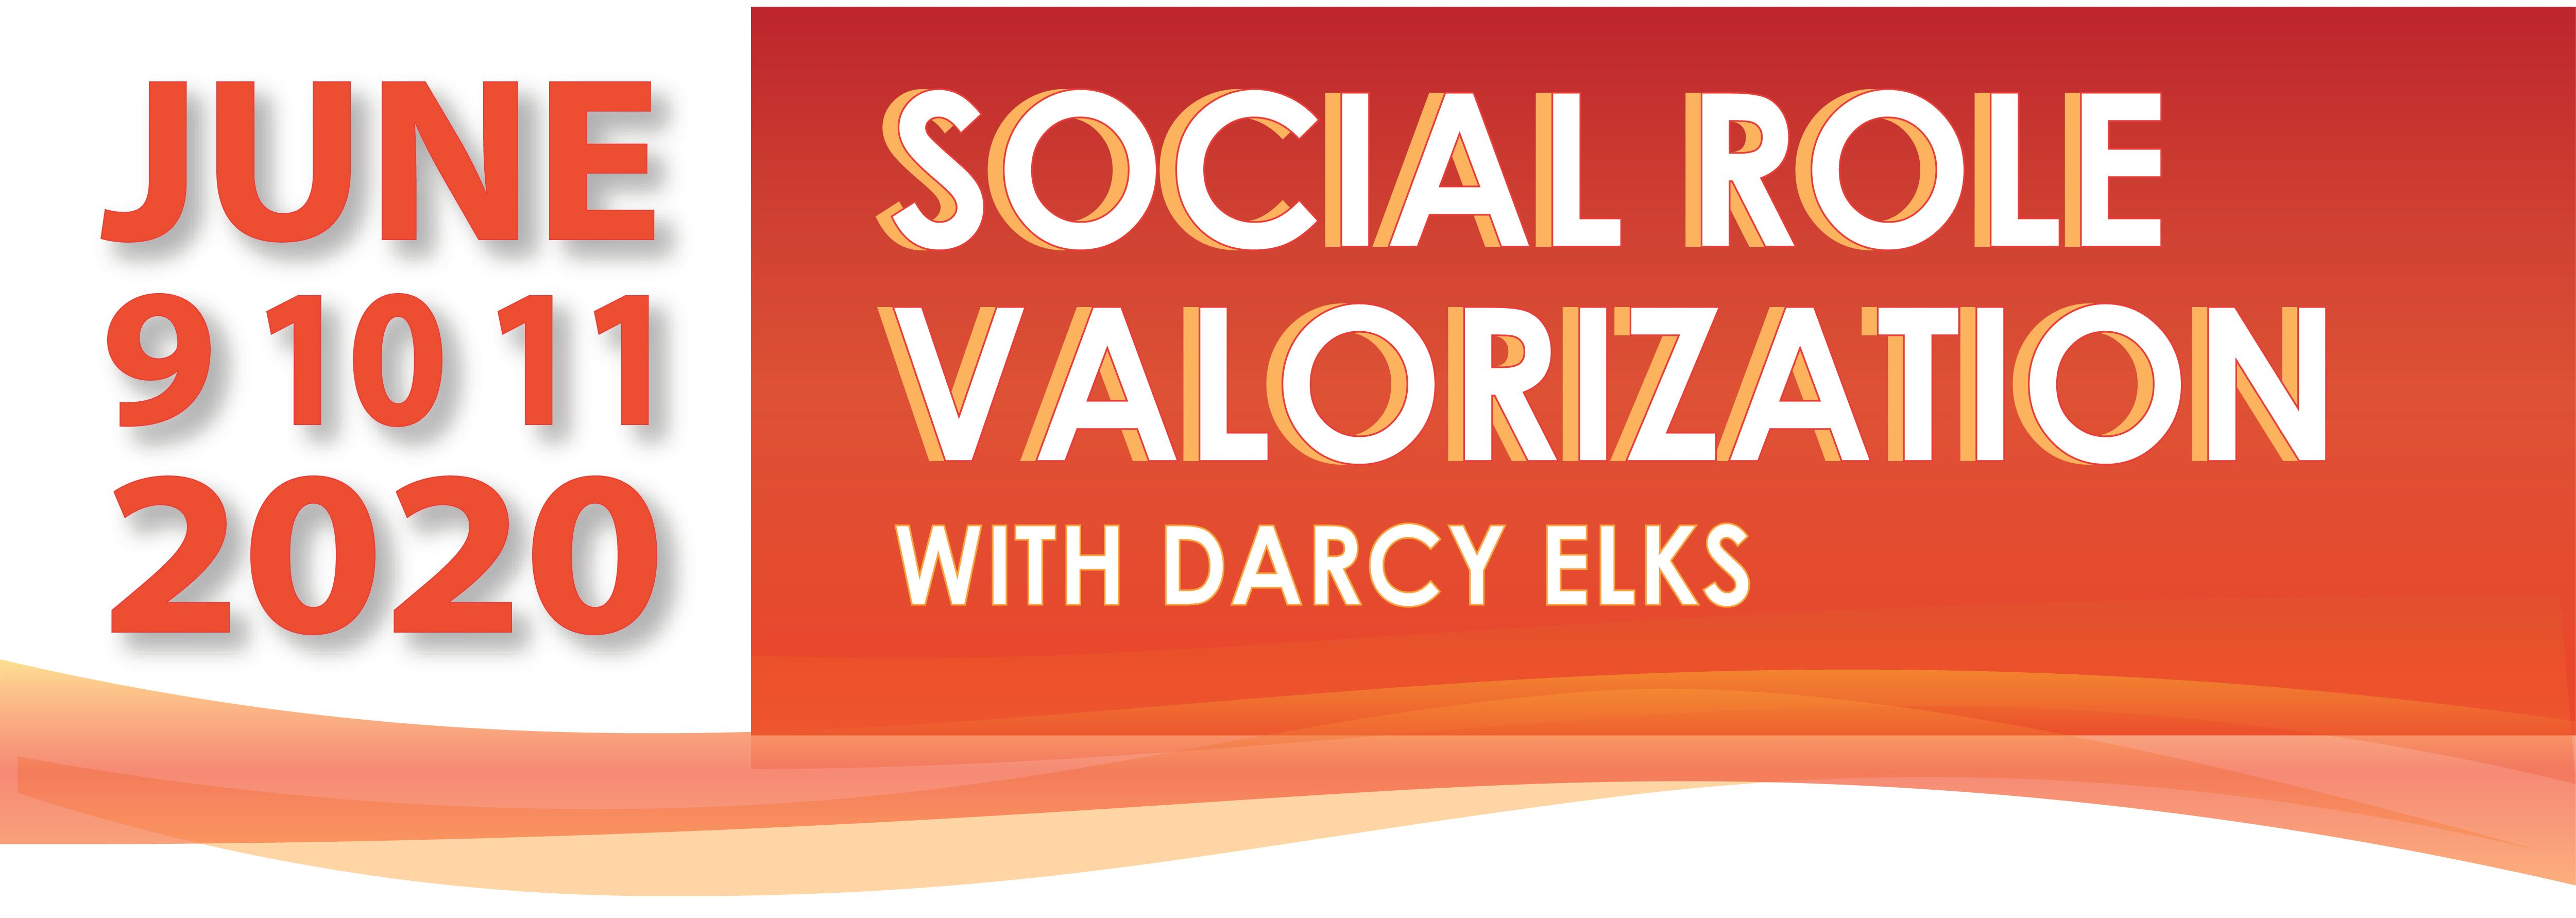 June 9, 10, and 11, 2020. Social Role Valorization with Darcy Elks